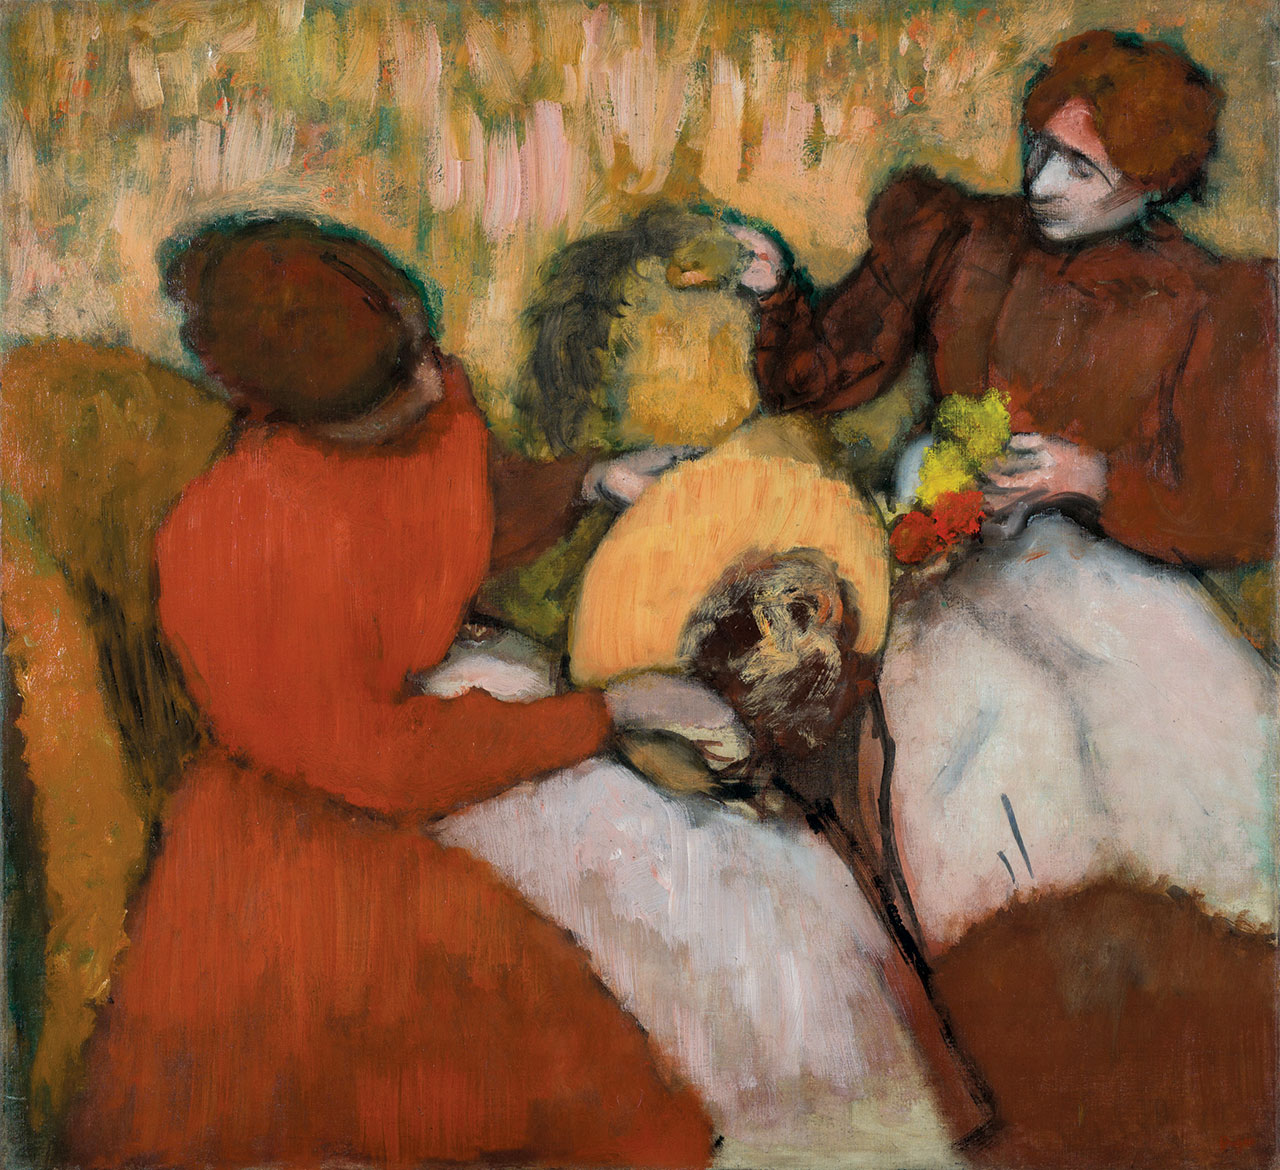 THE MILLINERS by Edgar Degas, oil on canvas, 75.2 x 81.9 centimeters, circa 1898.  Courtesy of Saint Louis Art Museum.